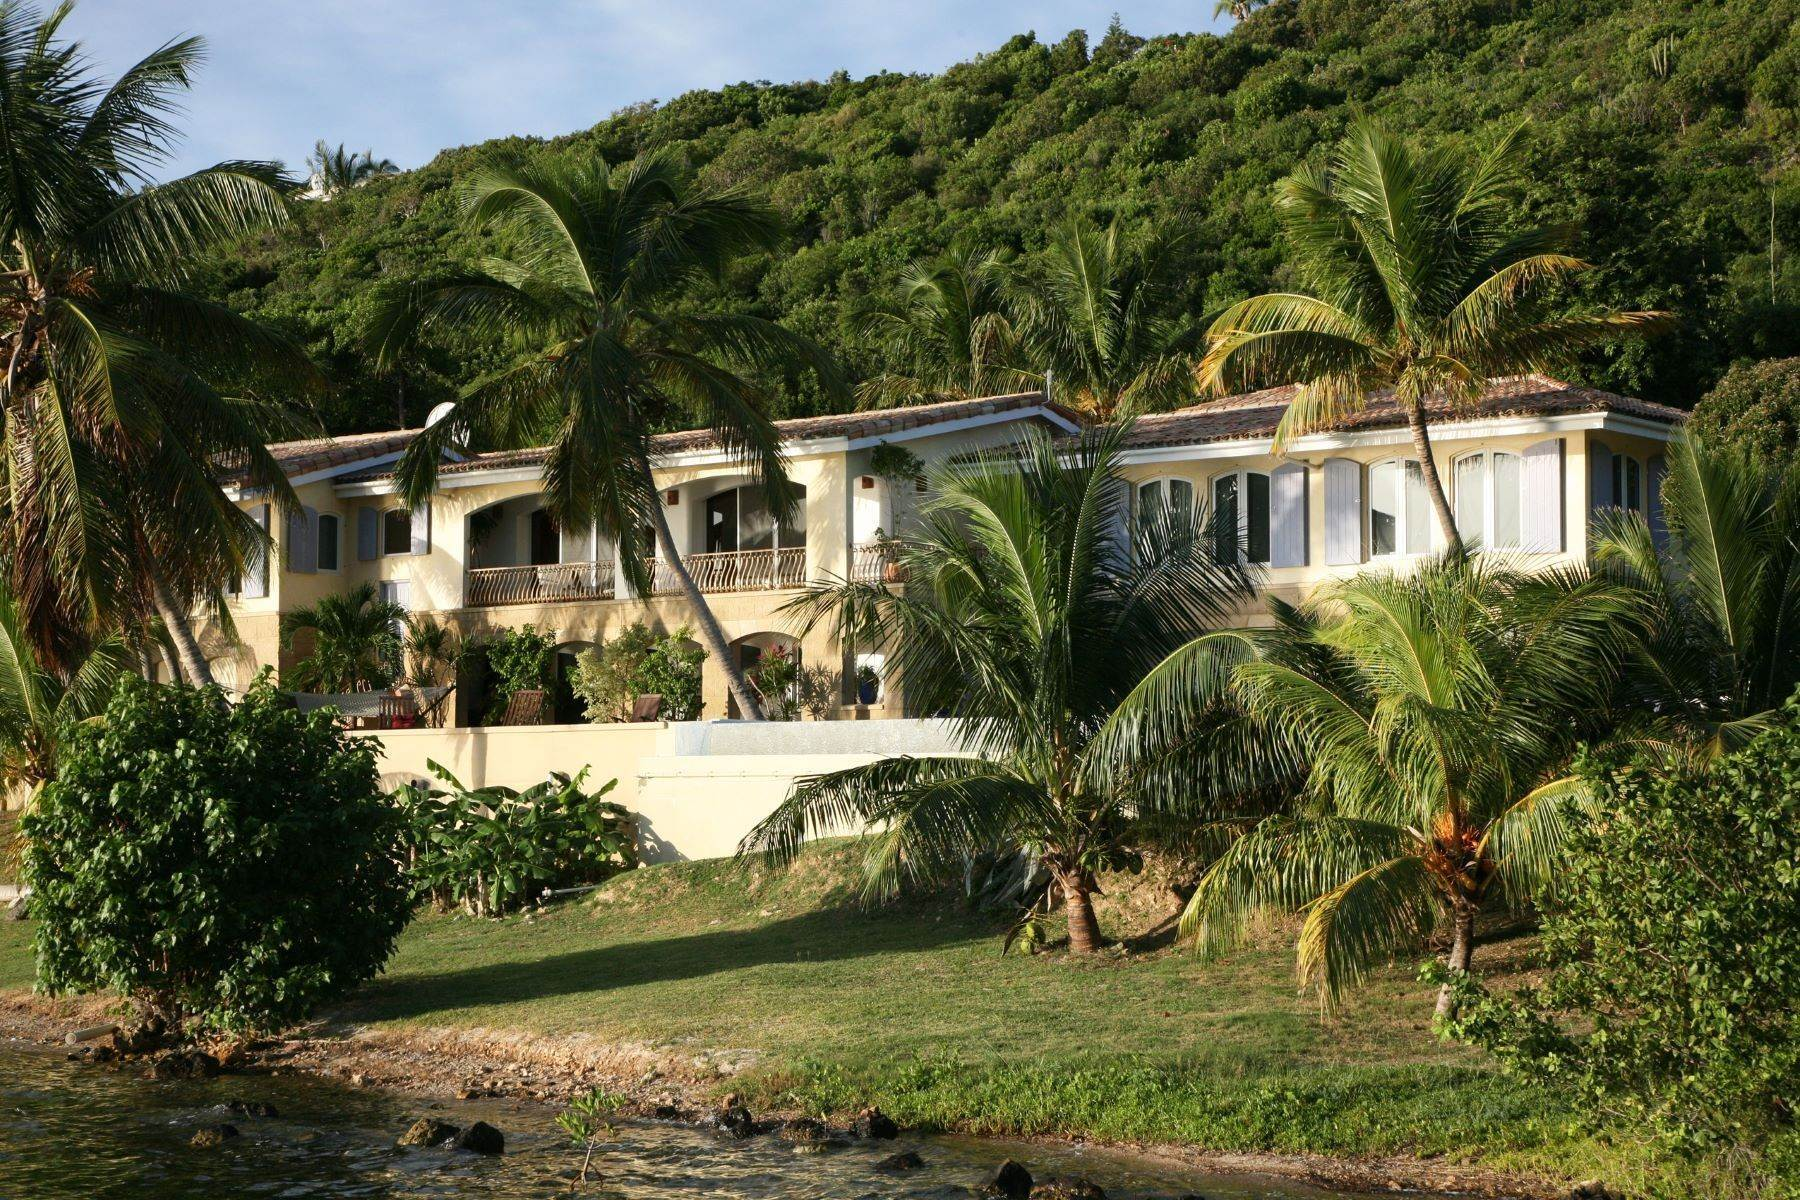 Single Family Homes for Sale at Elysium Terres Basses, 97150, St. Martin